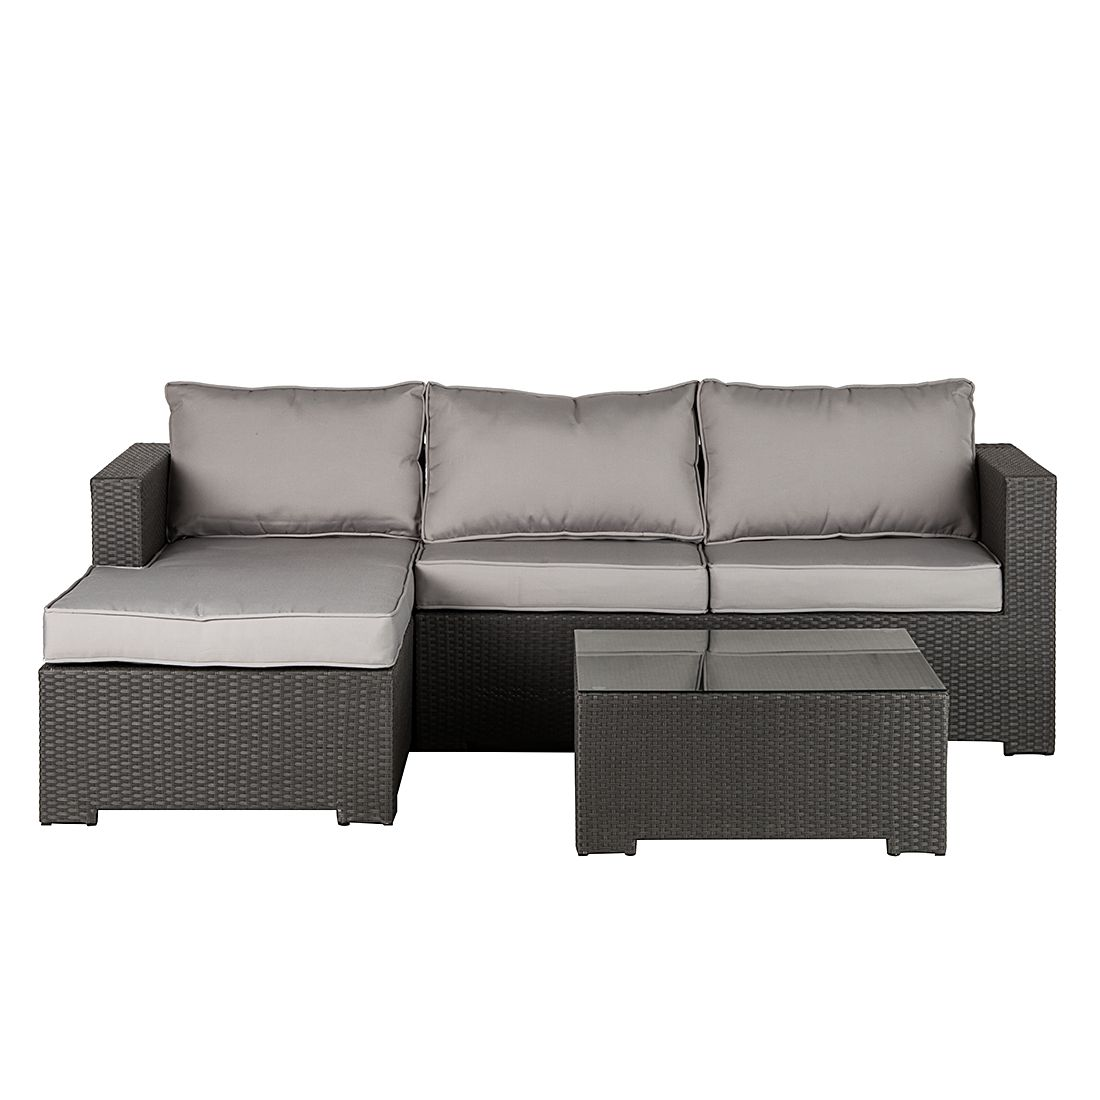 3 teiliges sofa 3 teiliges sofa with 3 teiliges sofa. Black Bedroom Furniture Sets. Home Design Ideas